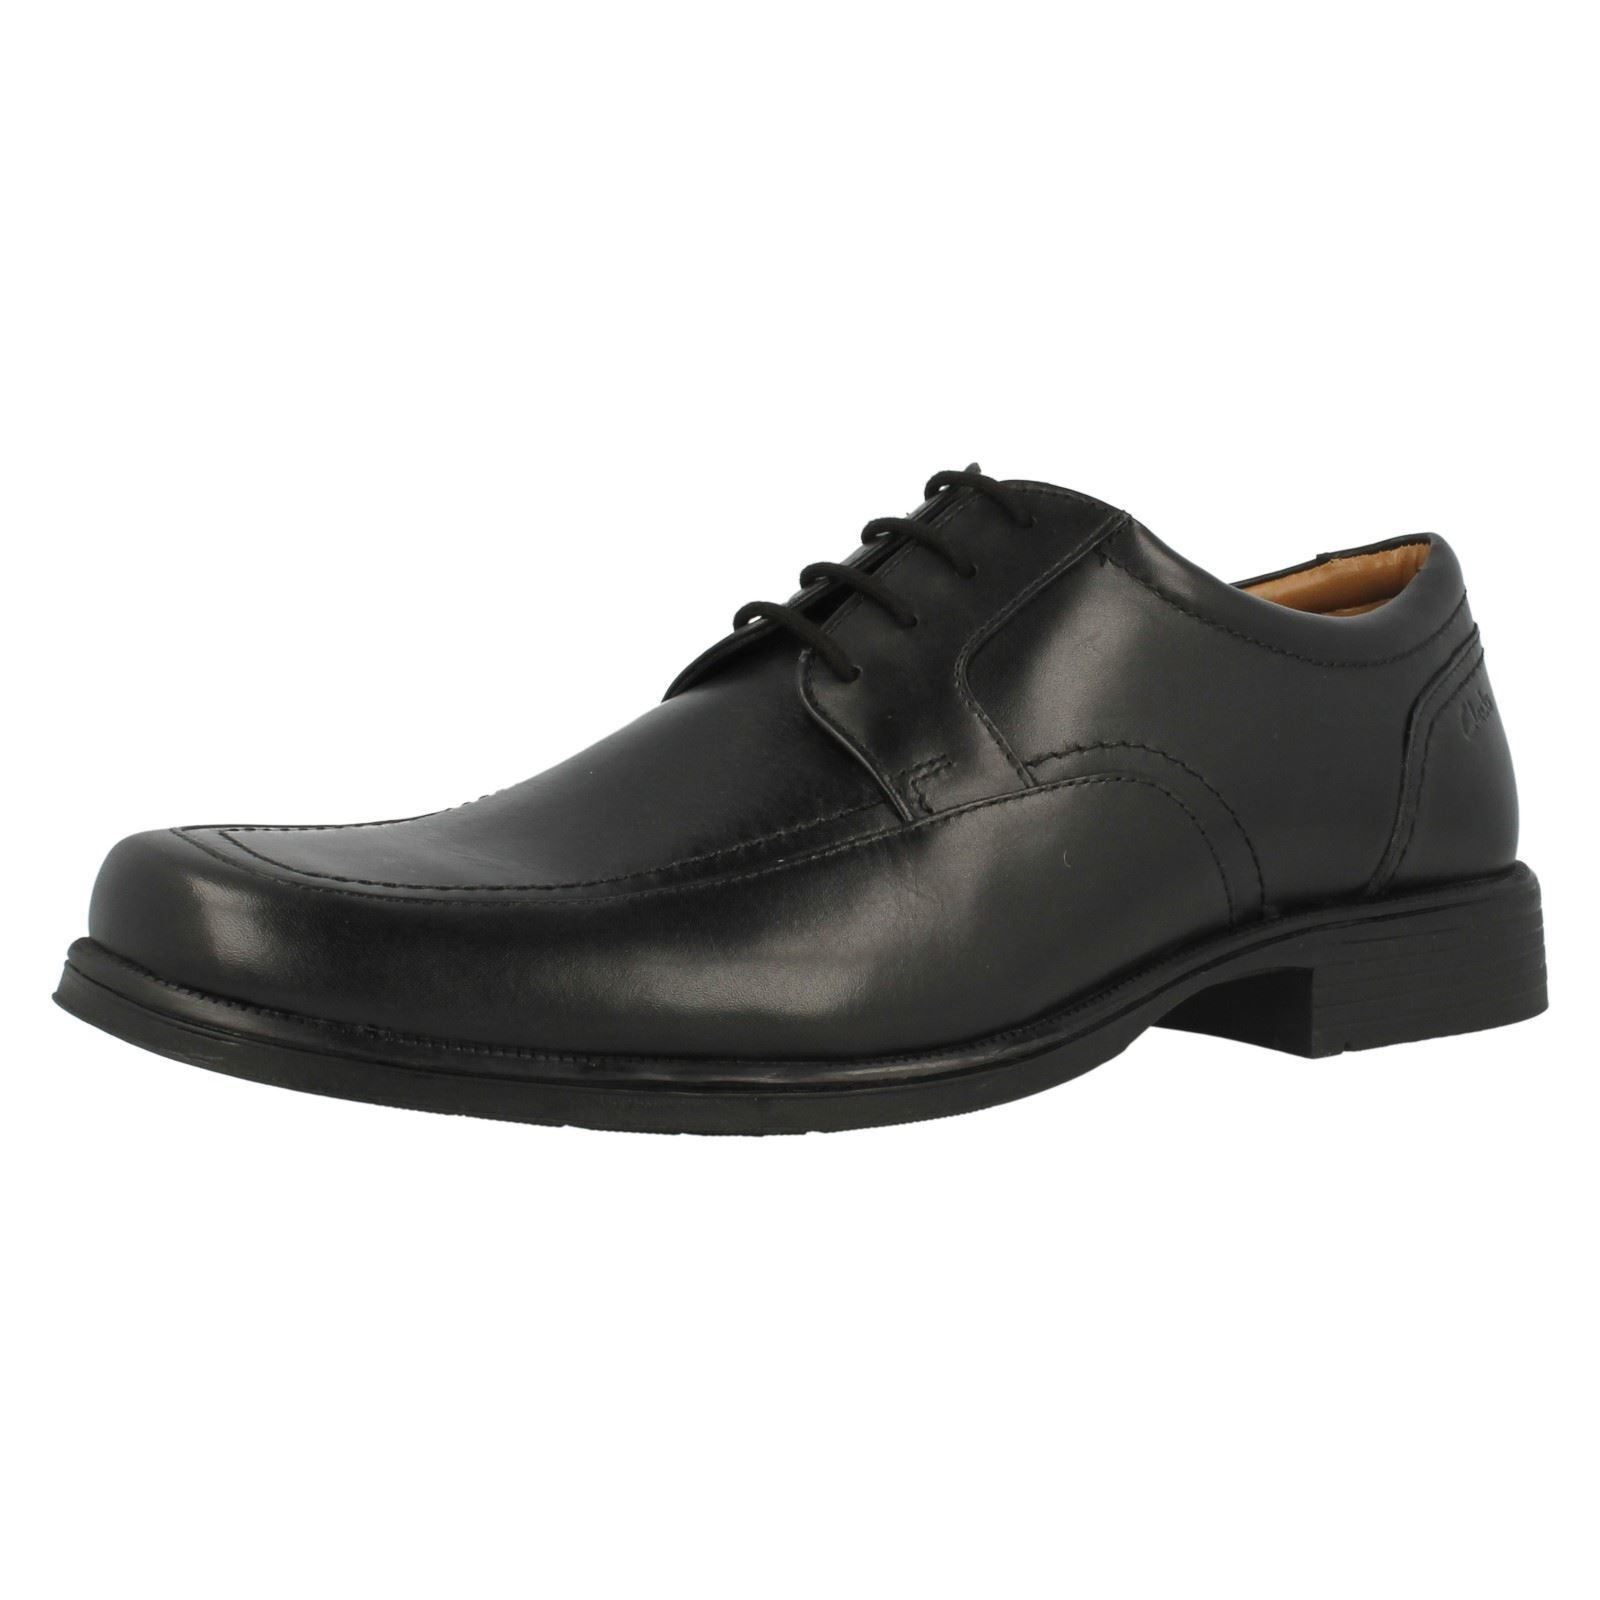 Mens Clarks Huckley Spring Black Leather Smart Lace Up Shoes Standard G Fitting